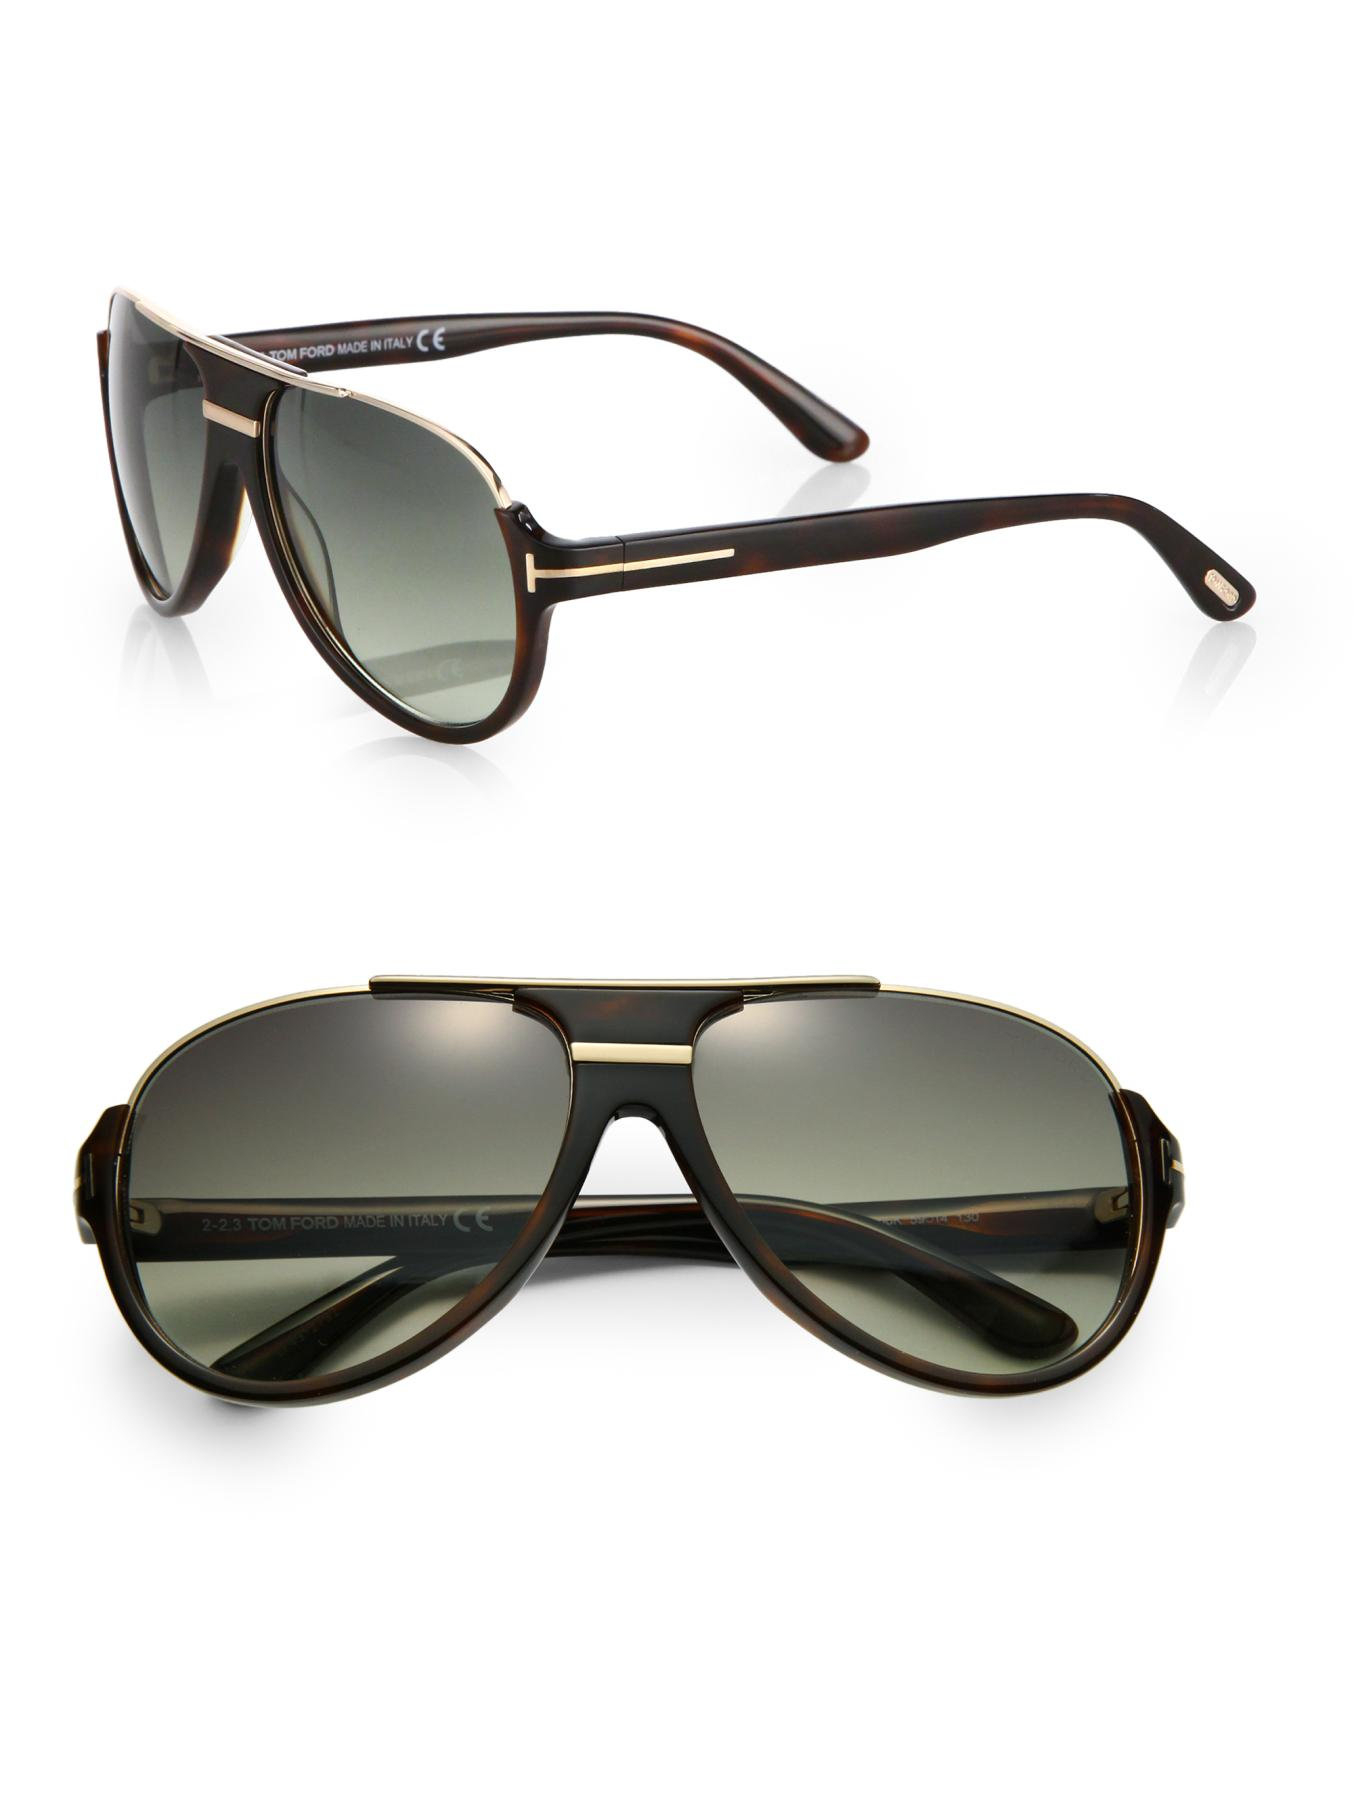 tom ford dimitry acetate retro sunglasses in brown for men. Black Bedroom Furniture Sets. Home Design Ideas